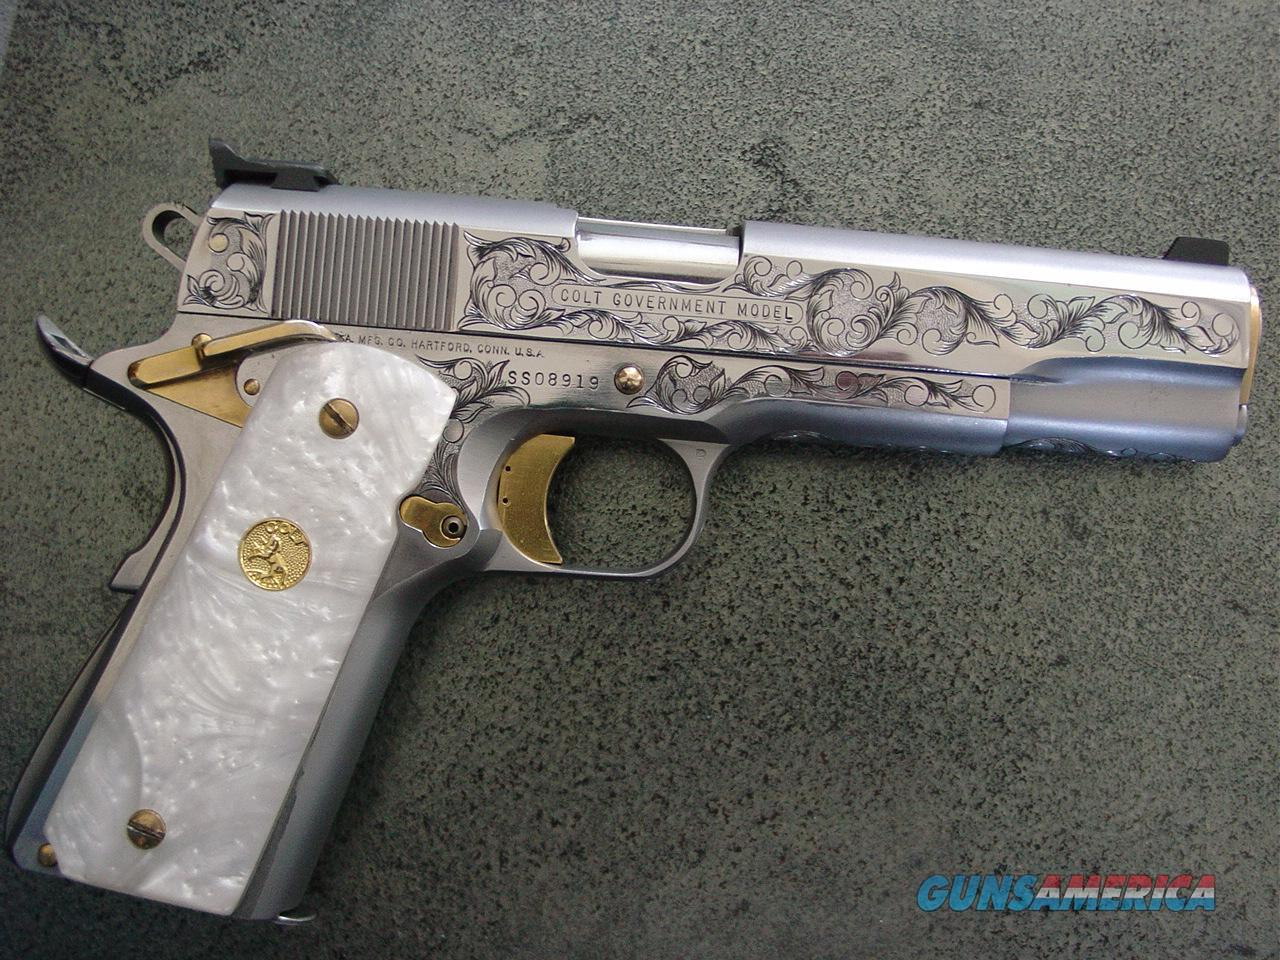 Colt 1911 series 80 45acp master engraved by ken smith of florida